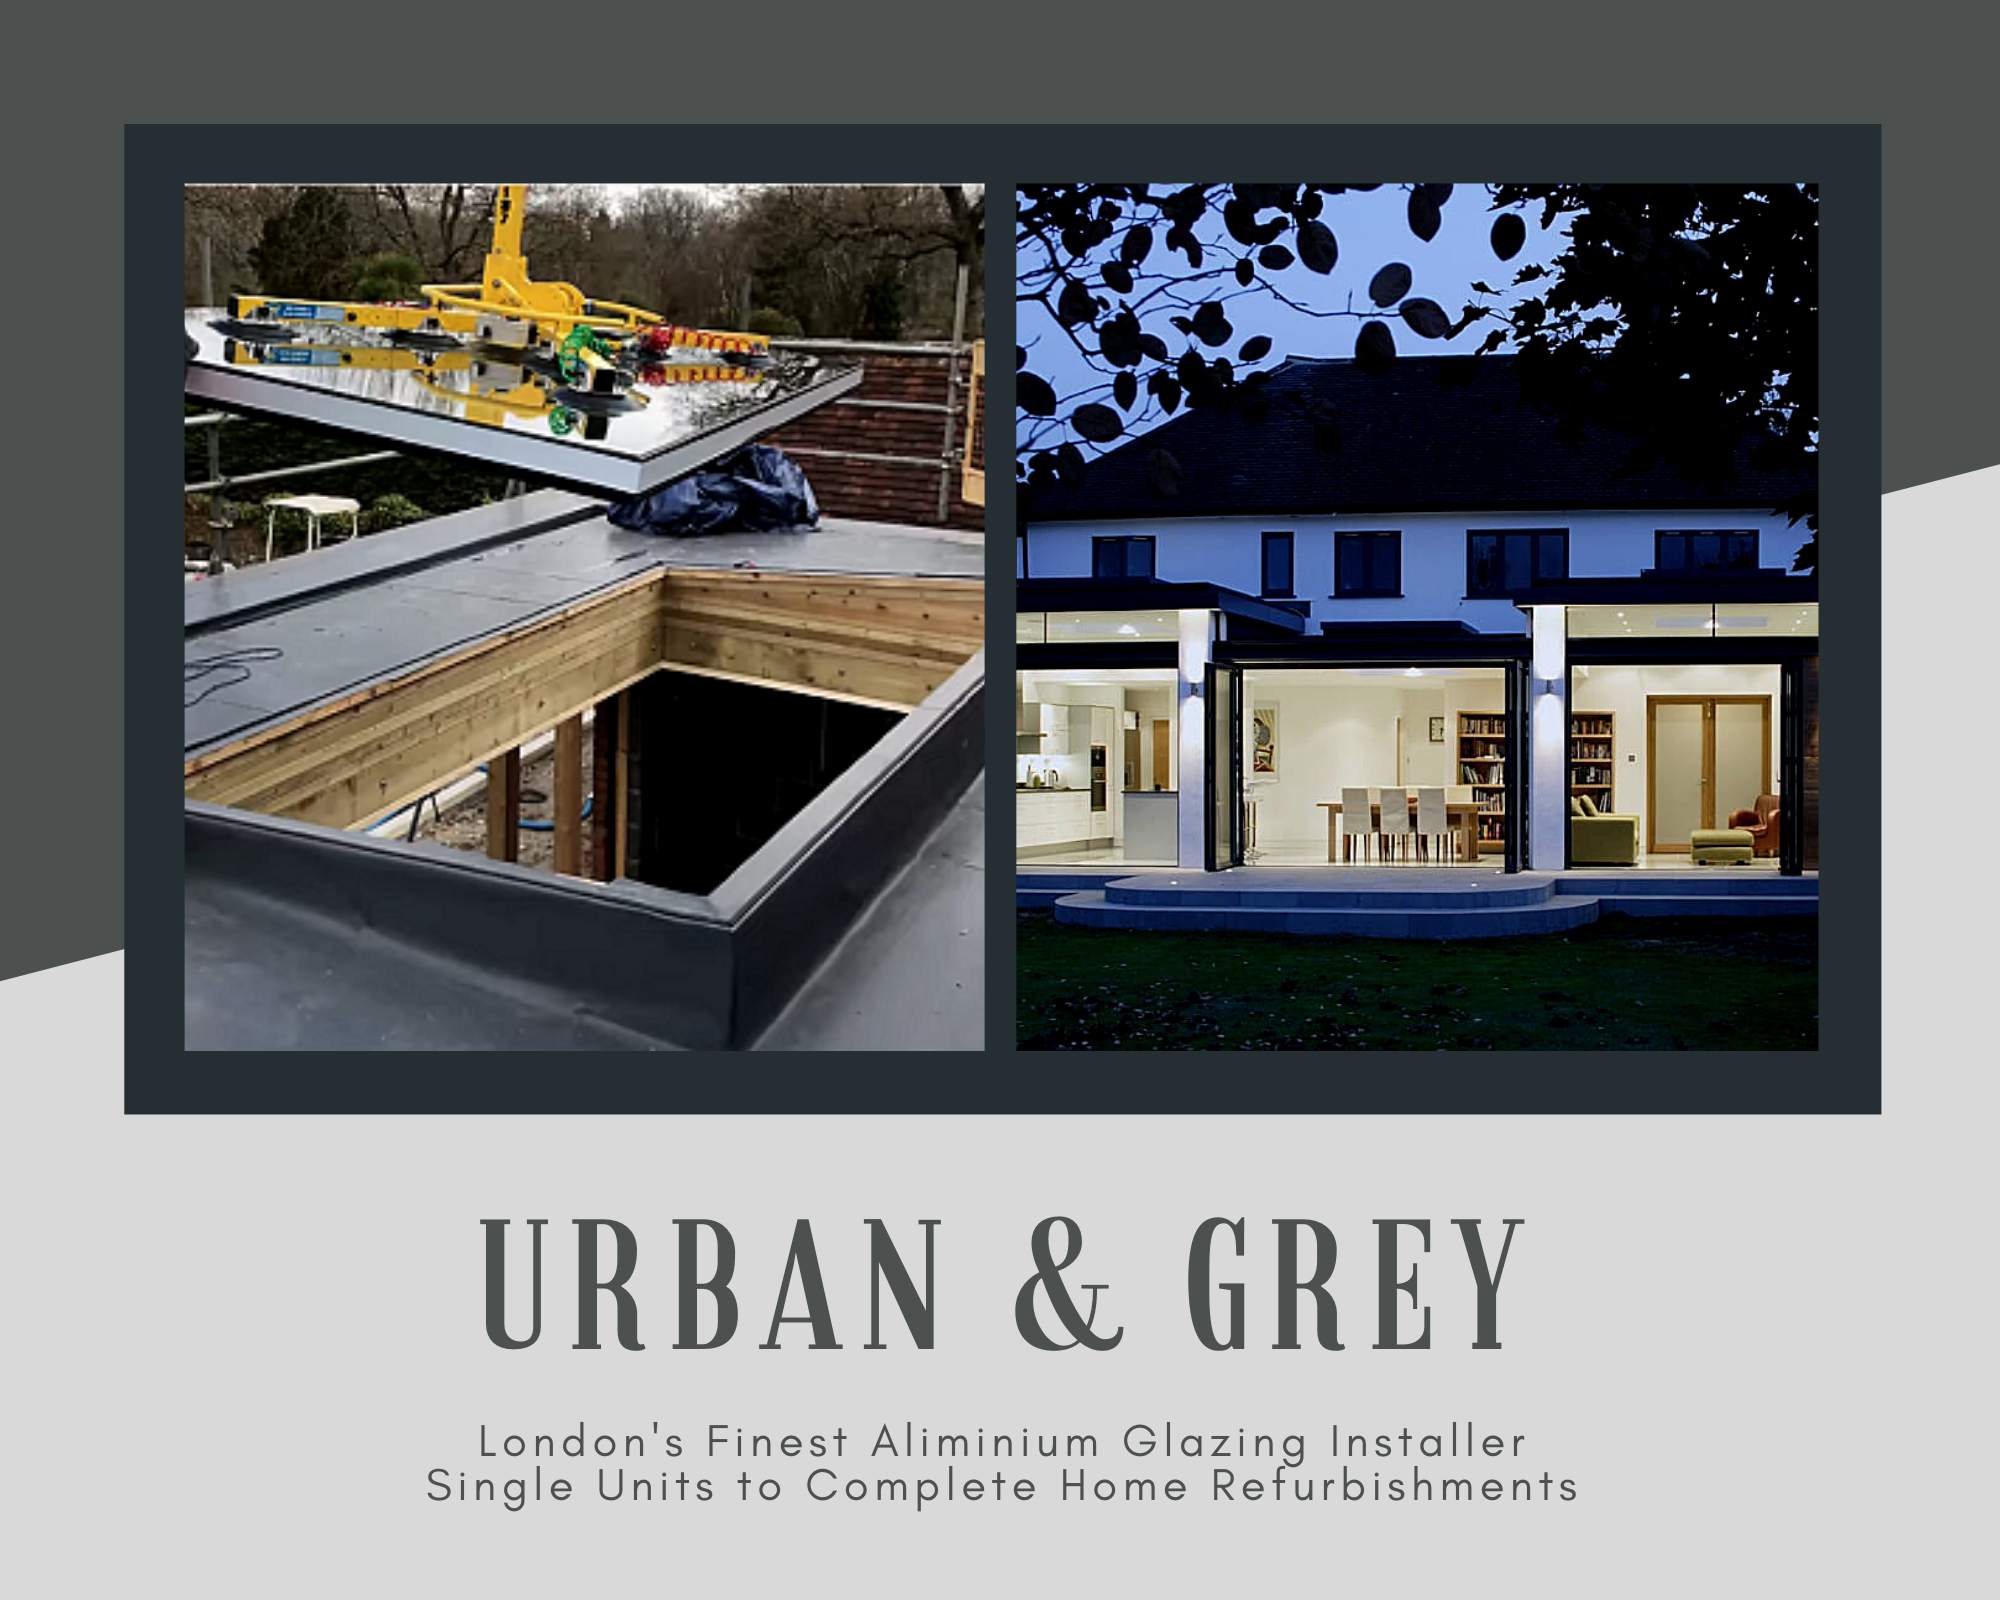 Sky Lanterns London SkyLights Roof Windows Light Urban Design Installation Home Refurbishments Bespoke Made To Measure